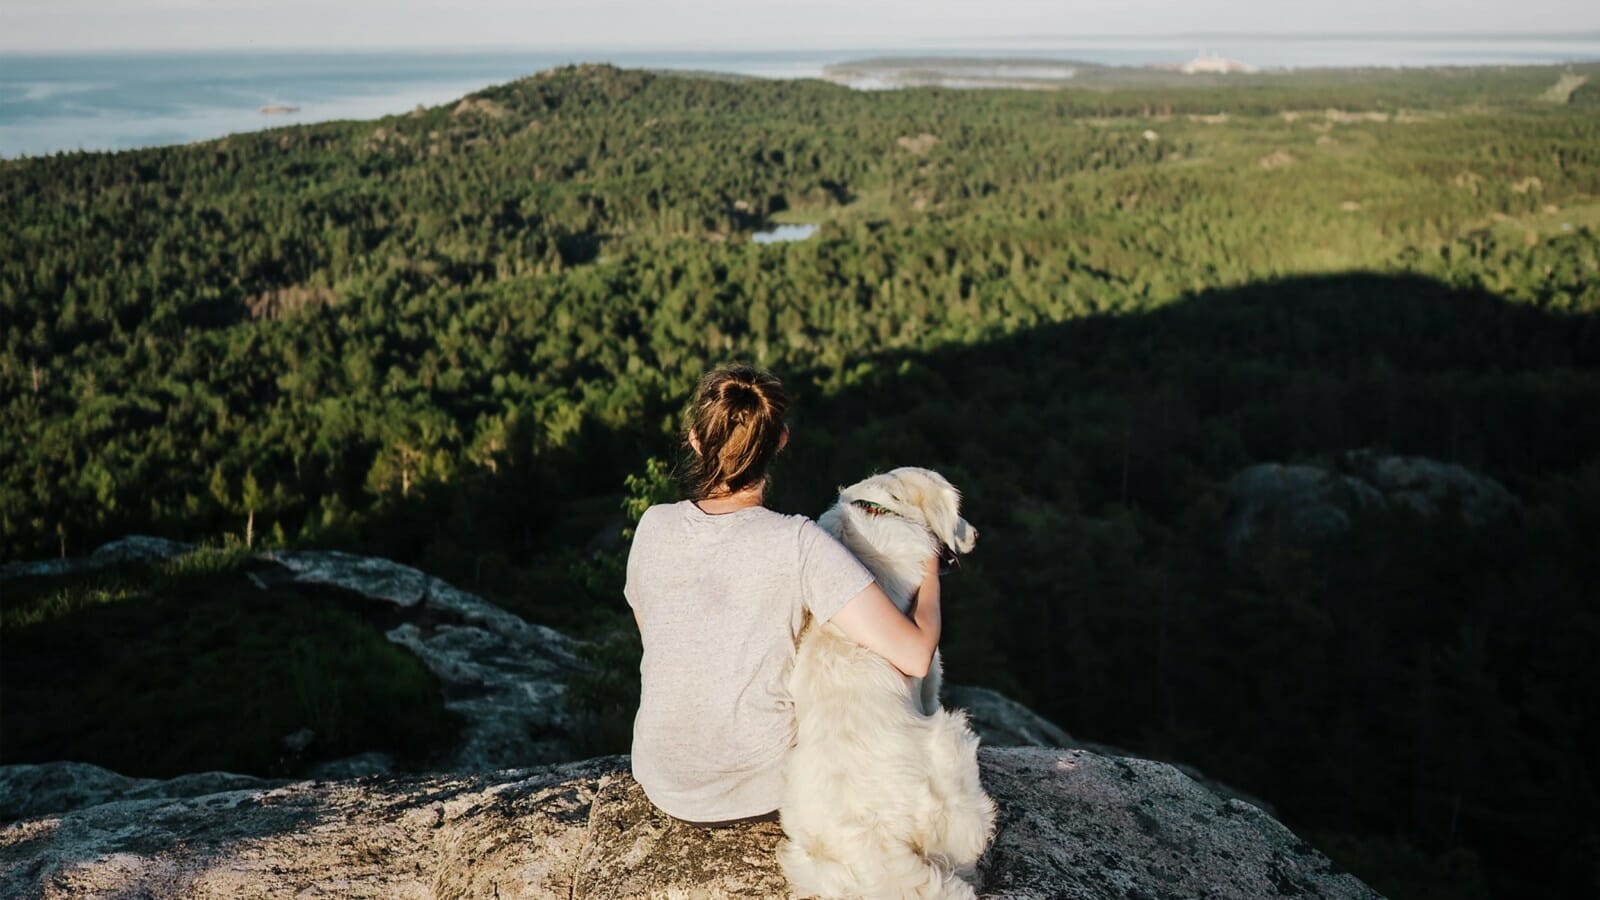 A woman and her dog sitting on a rock with a view of trees and water